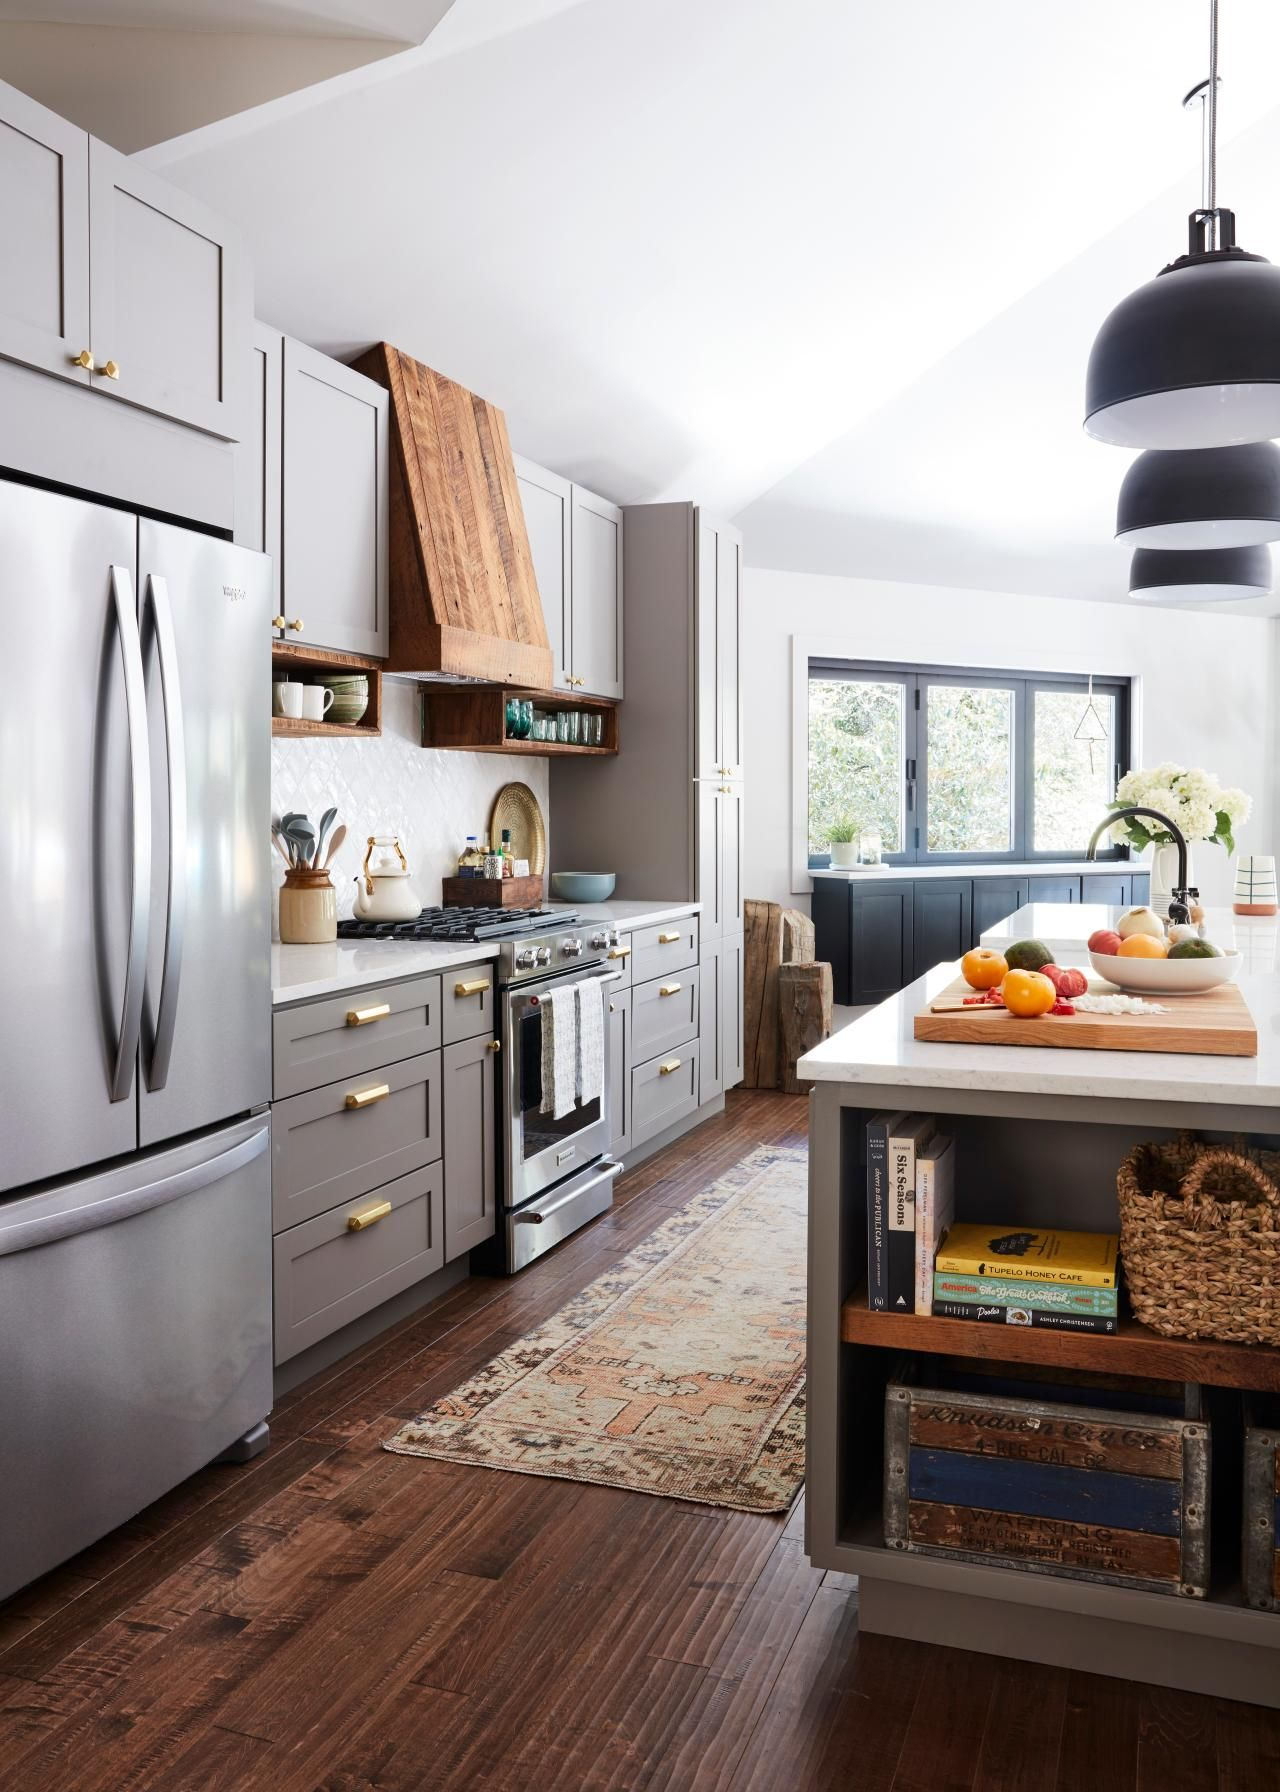 Pick Your Favorite Space Diy Network Ultimate Retreat Giveaway Diy Kitchen Remodel Small Kitchen Design Design Your Kitchen